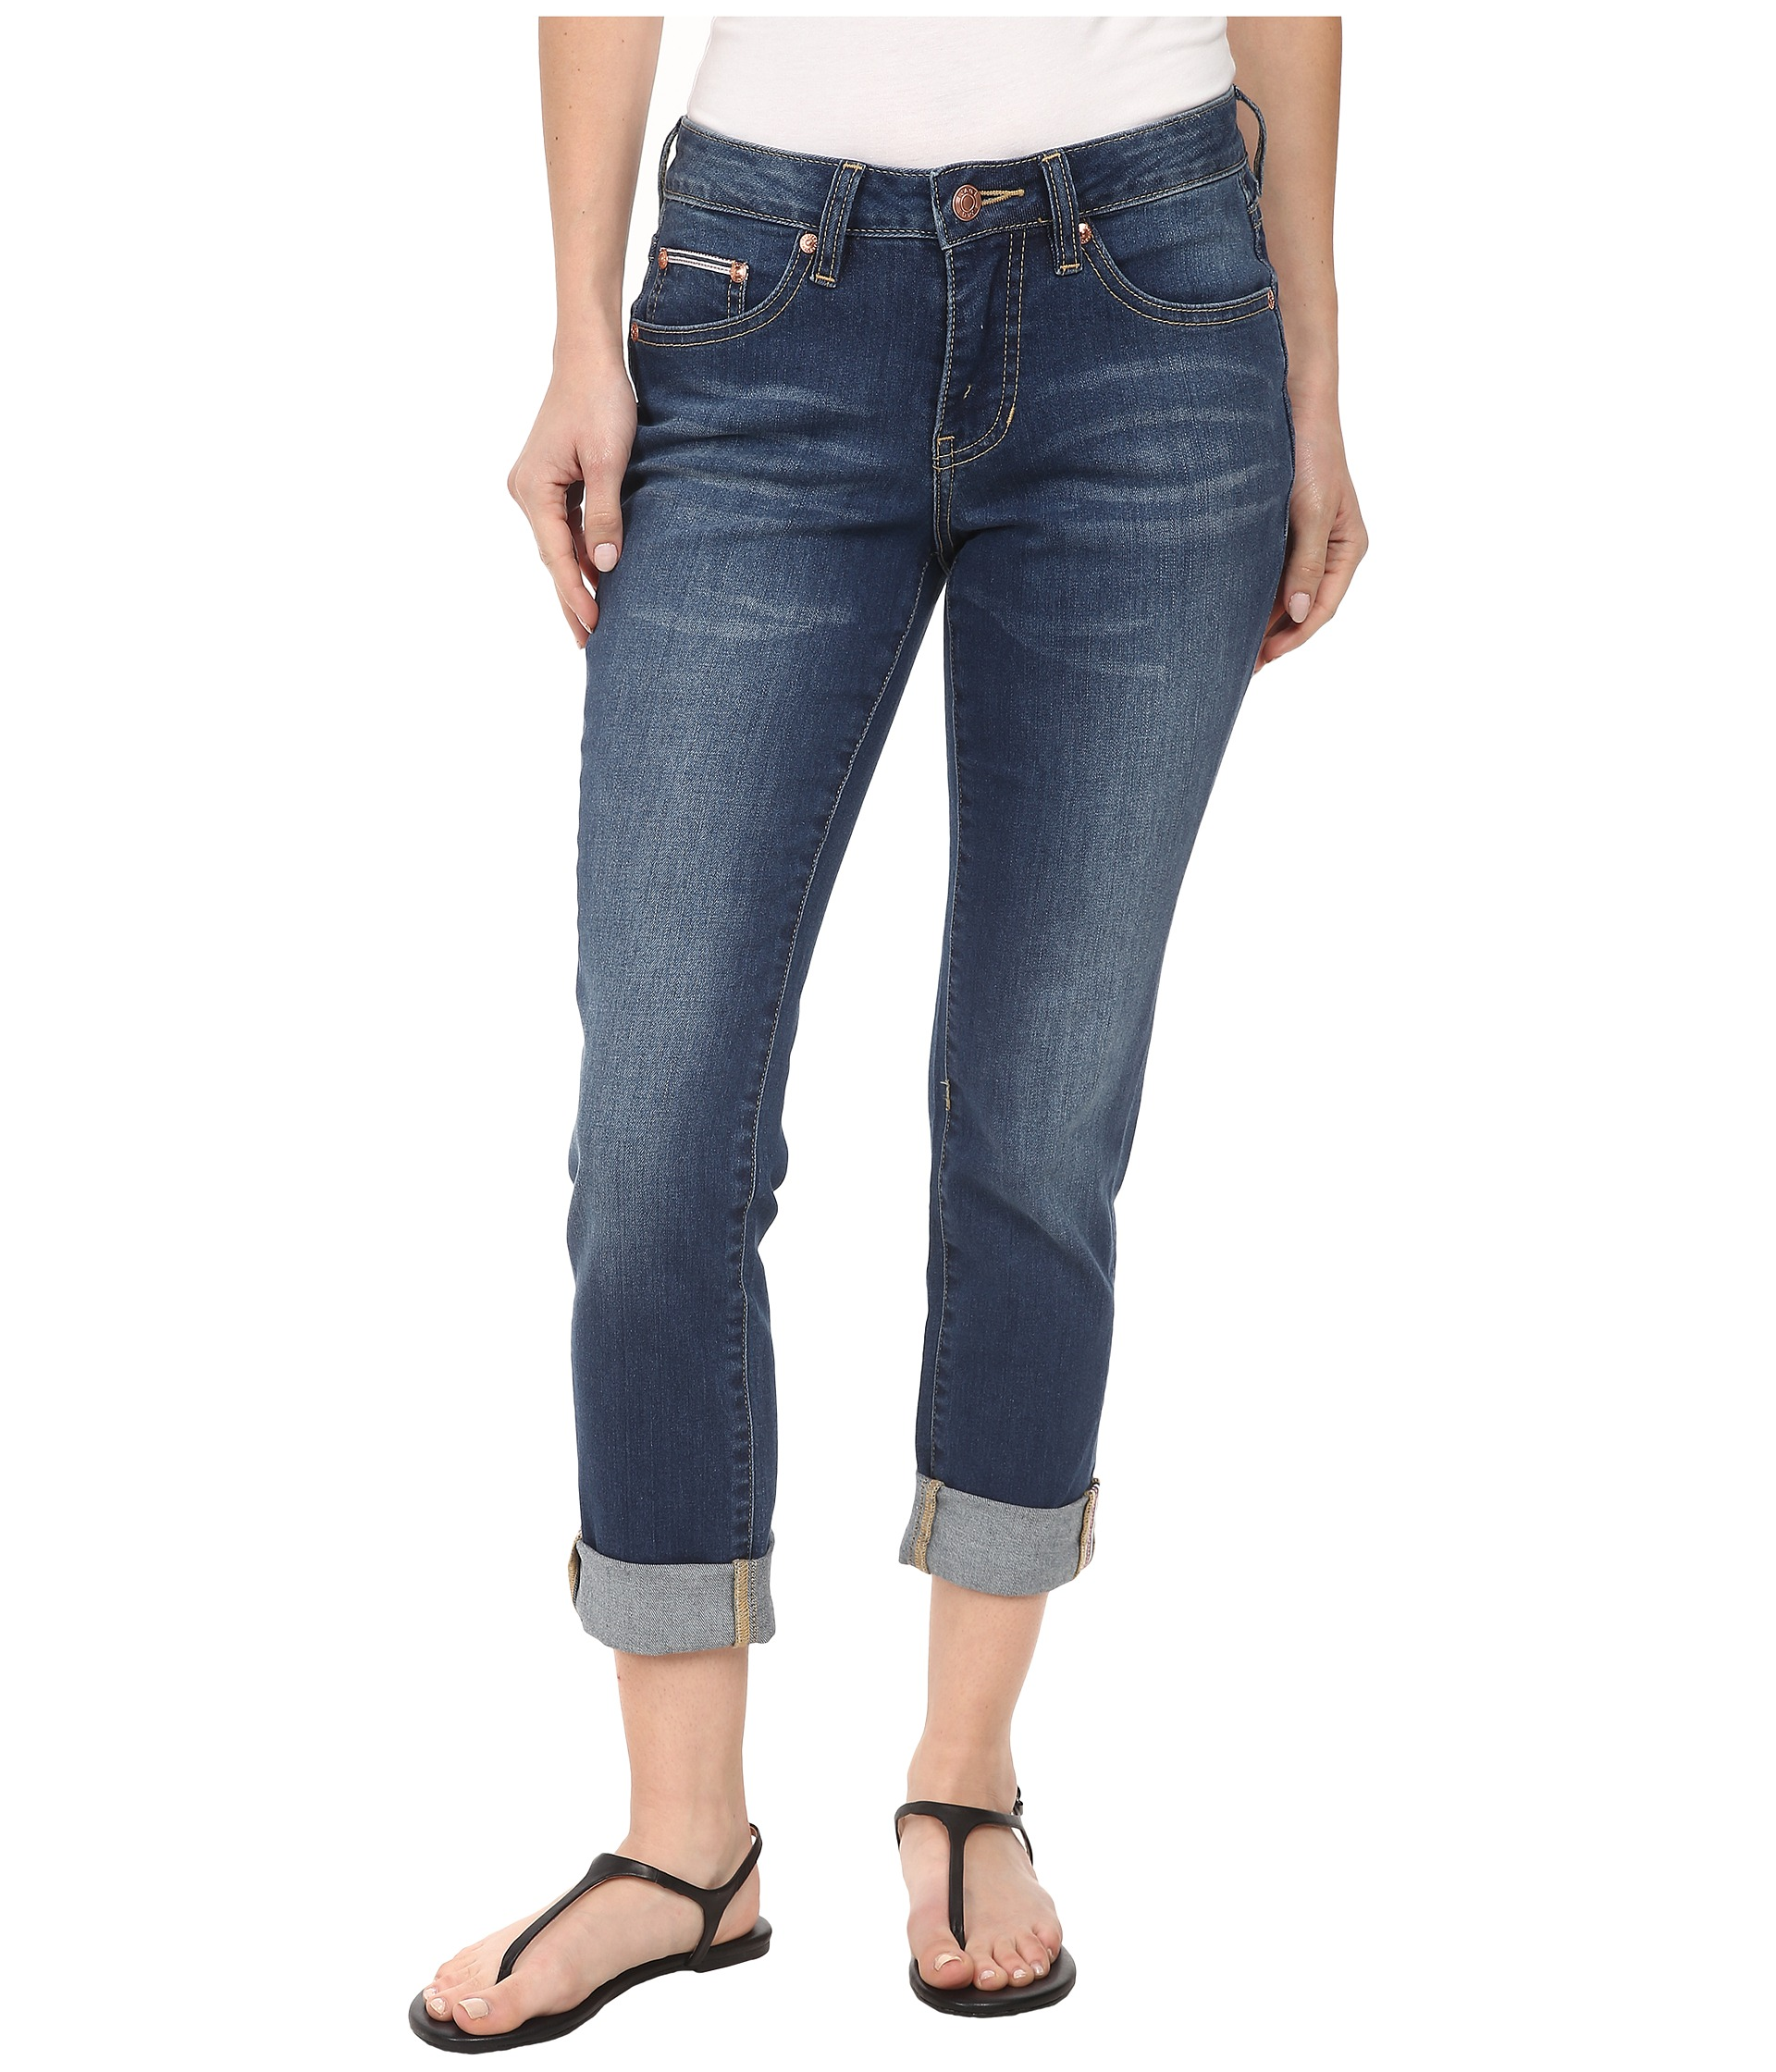 Jag Jeans Petite Petite Henry Relaxed Boyfriend in Forever Blue - Zappos.com Free Shipping BOTH Ways